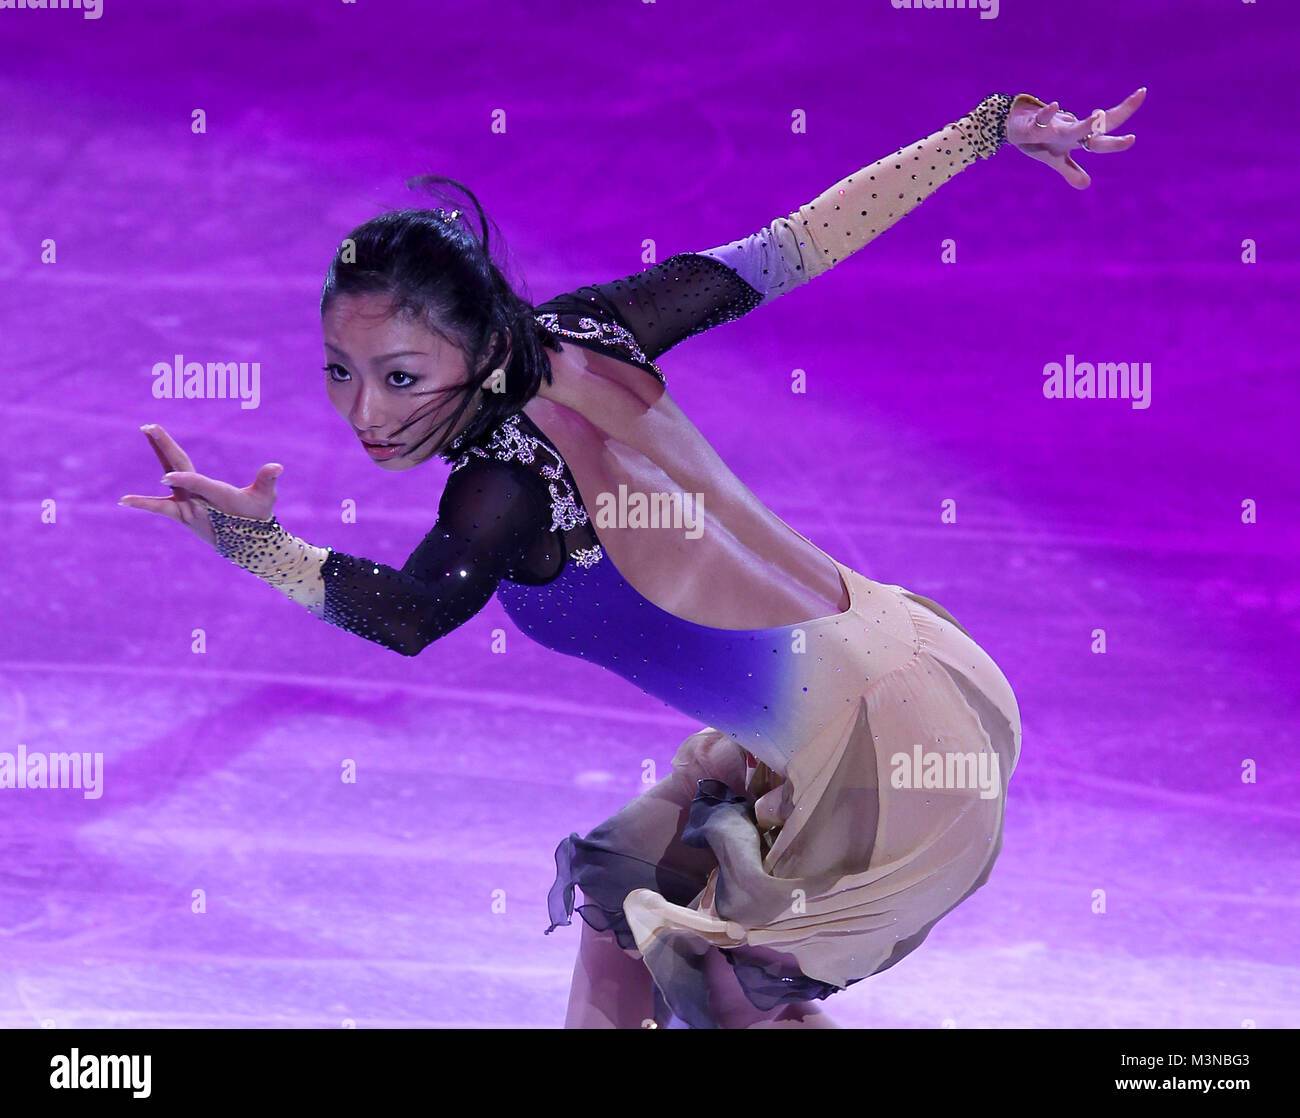 Miki Ando of Japan performs at the Pacific Coliseum during an exhibition to mark the end of the Figure Skating Competition - Stock Image